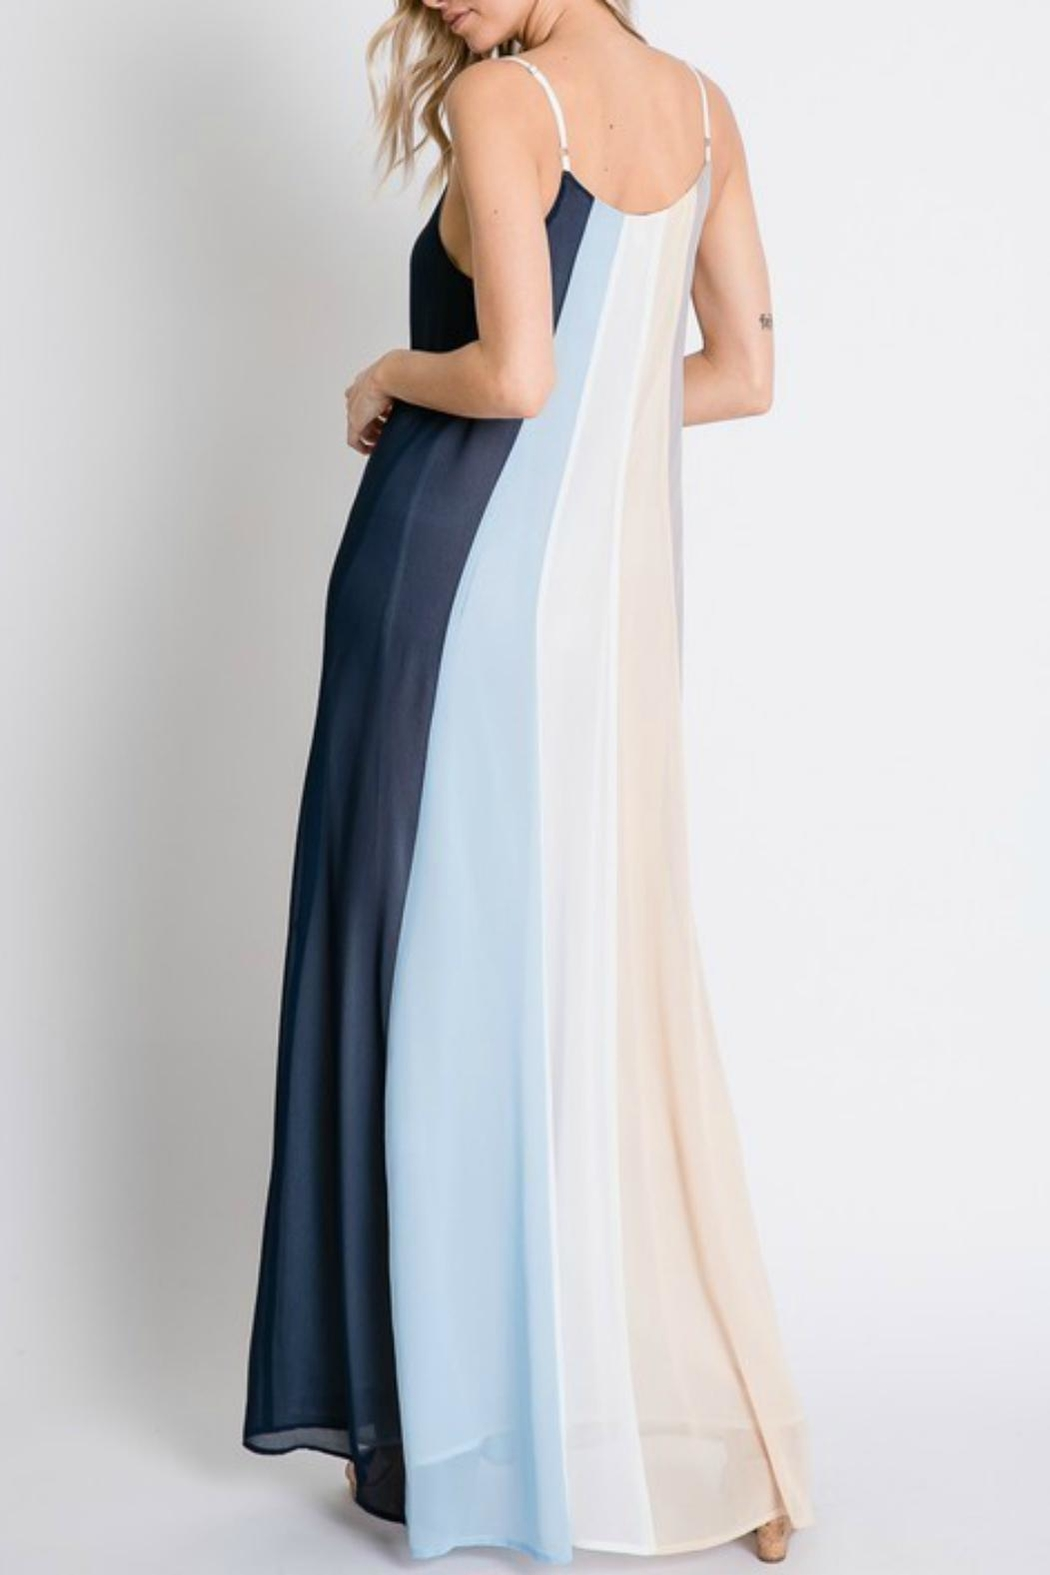 Pretty Little Things Colorblock Maxi Dress - Side Cropped Image